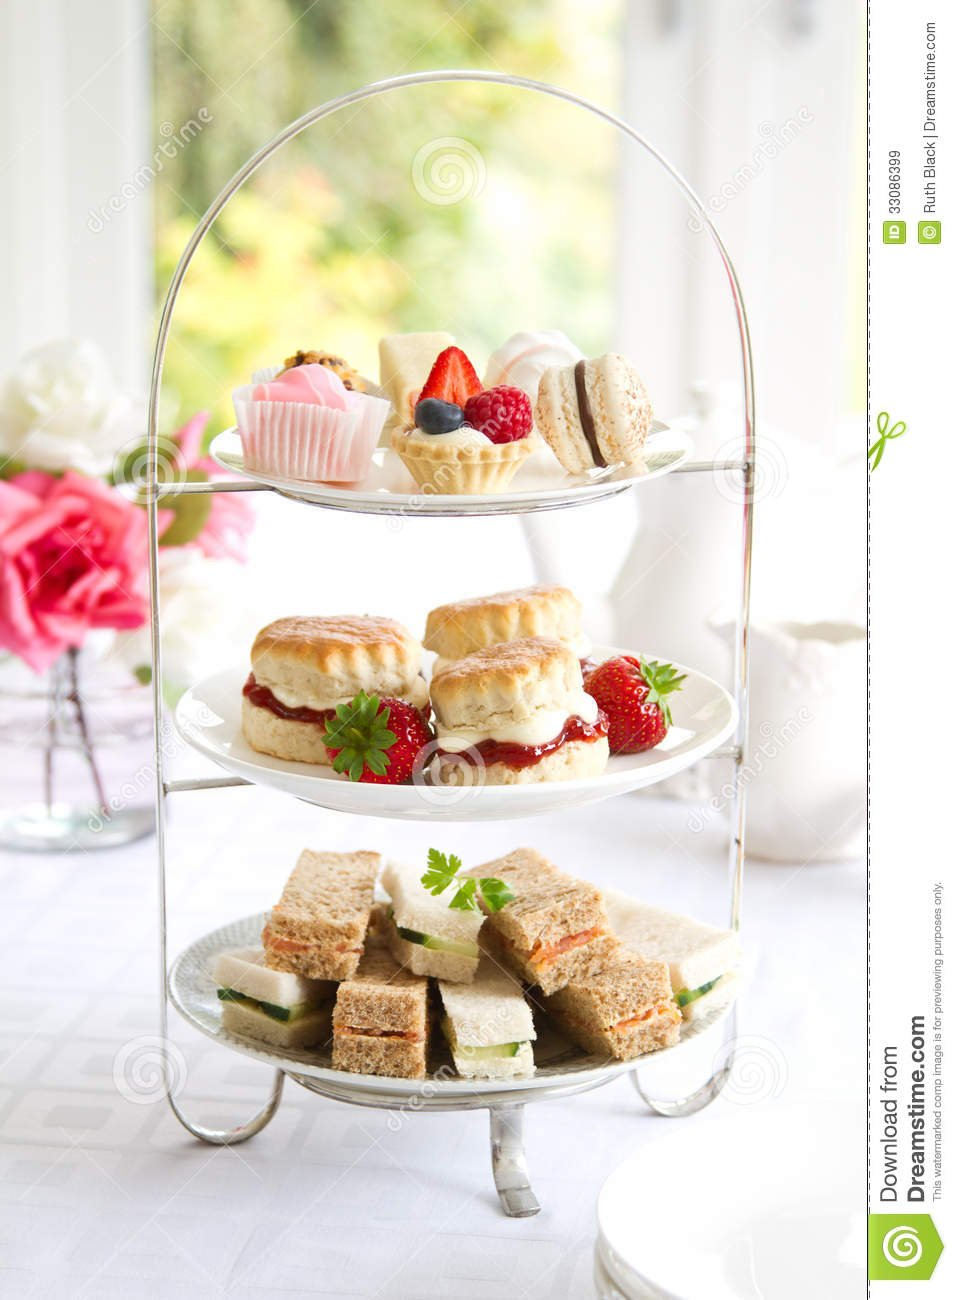 Afternoon Tea Stock Image  Image Of Fashioned, Cake, Dessert